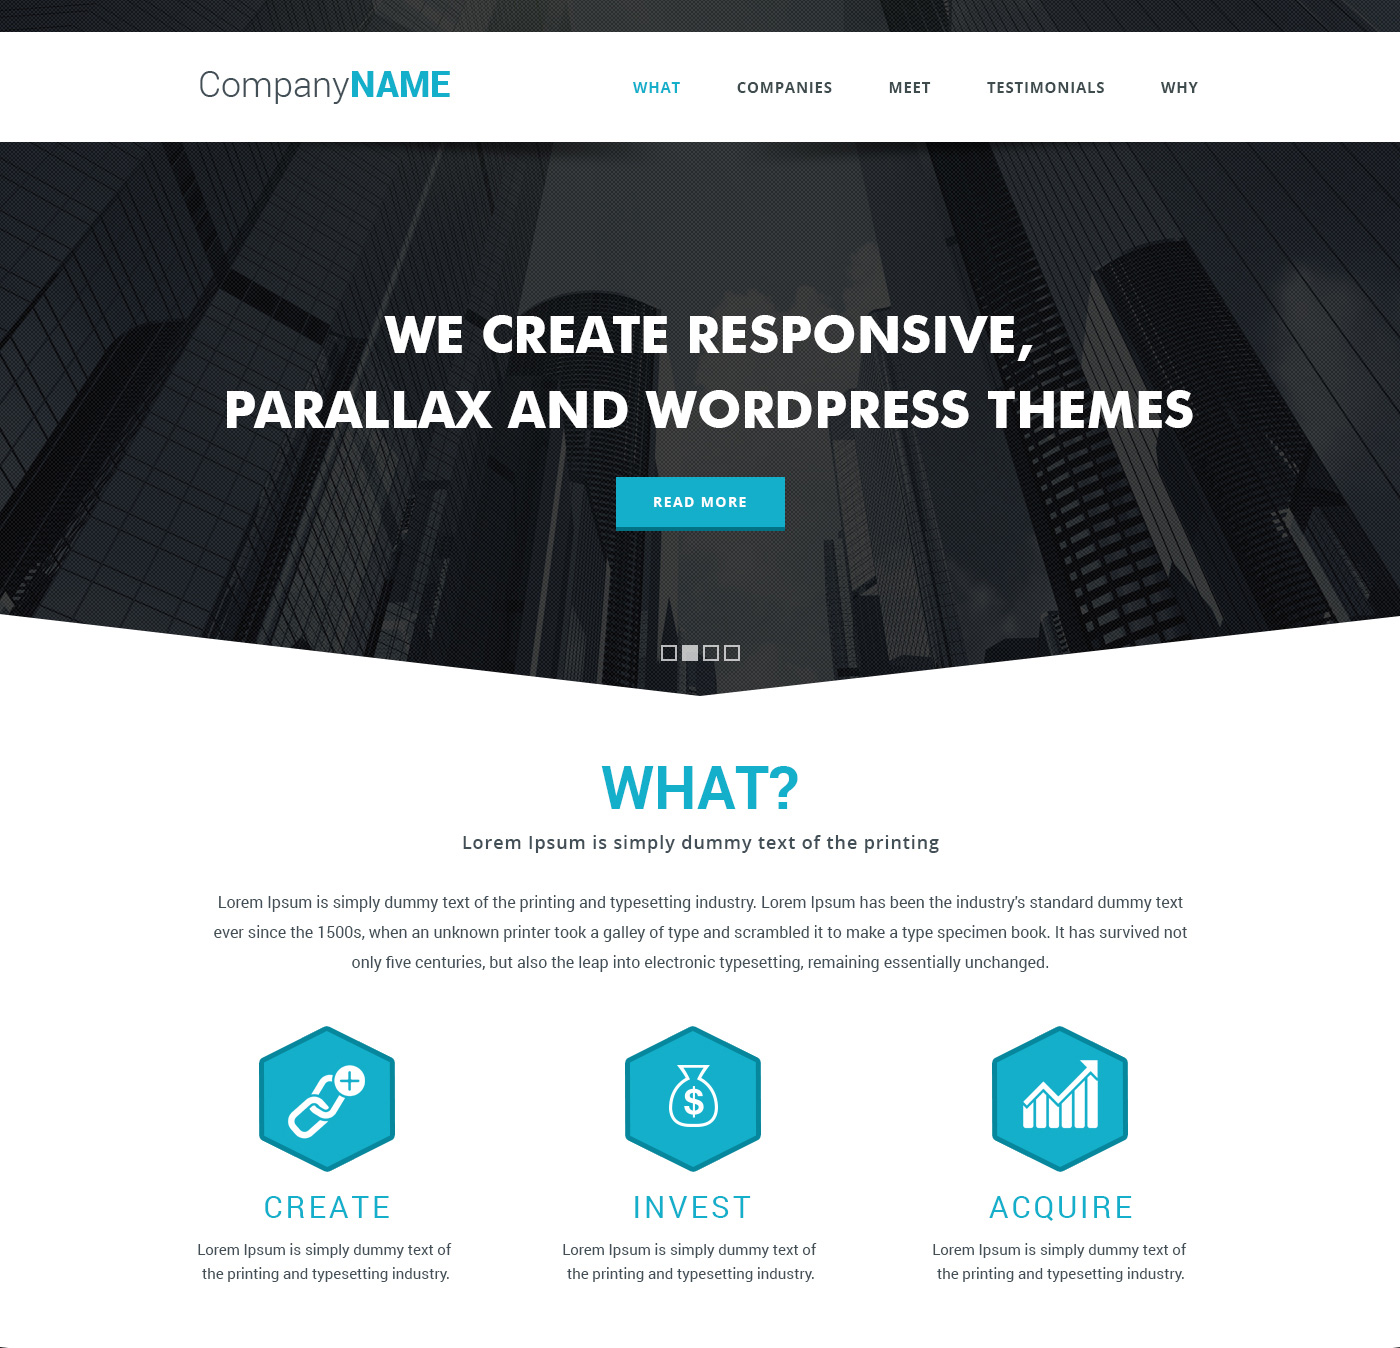 Simple parallax website template free psd download download psd simple parallax website template free psd maxwellsz